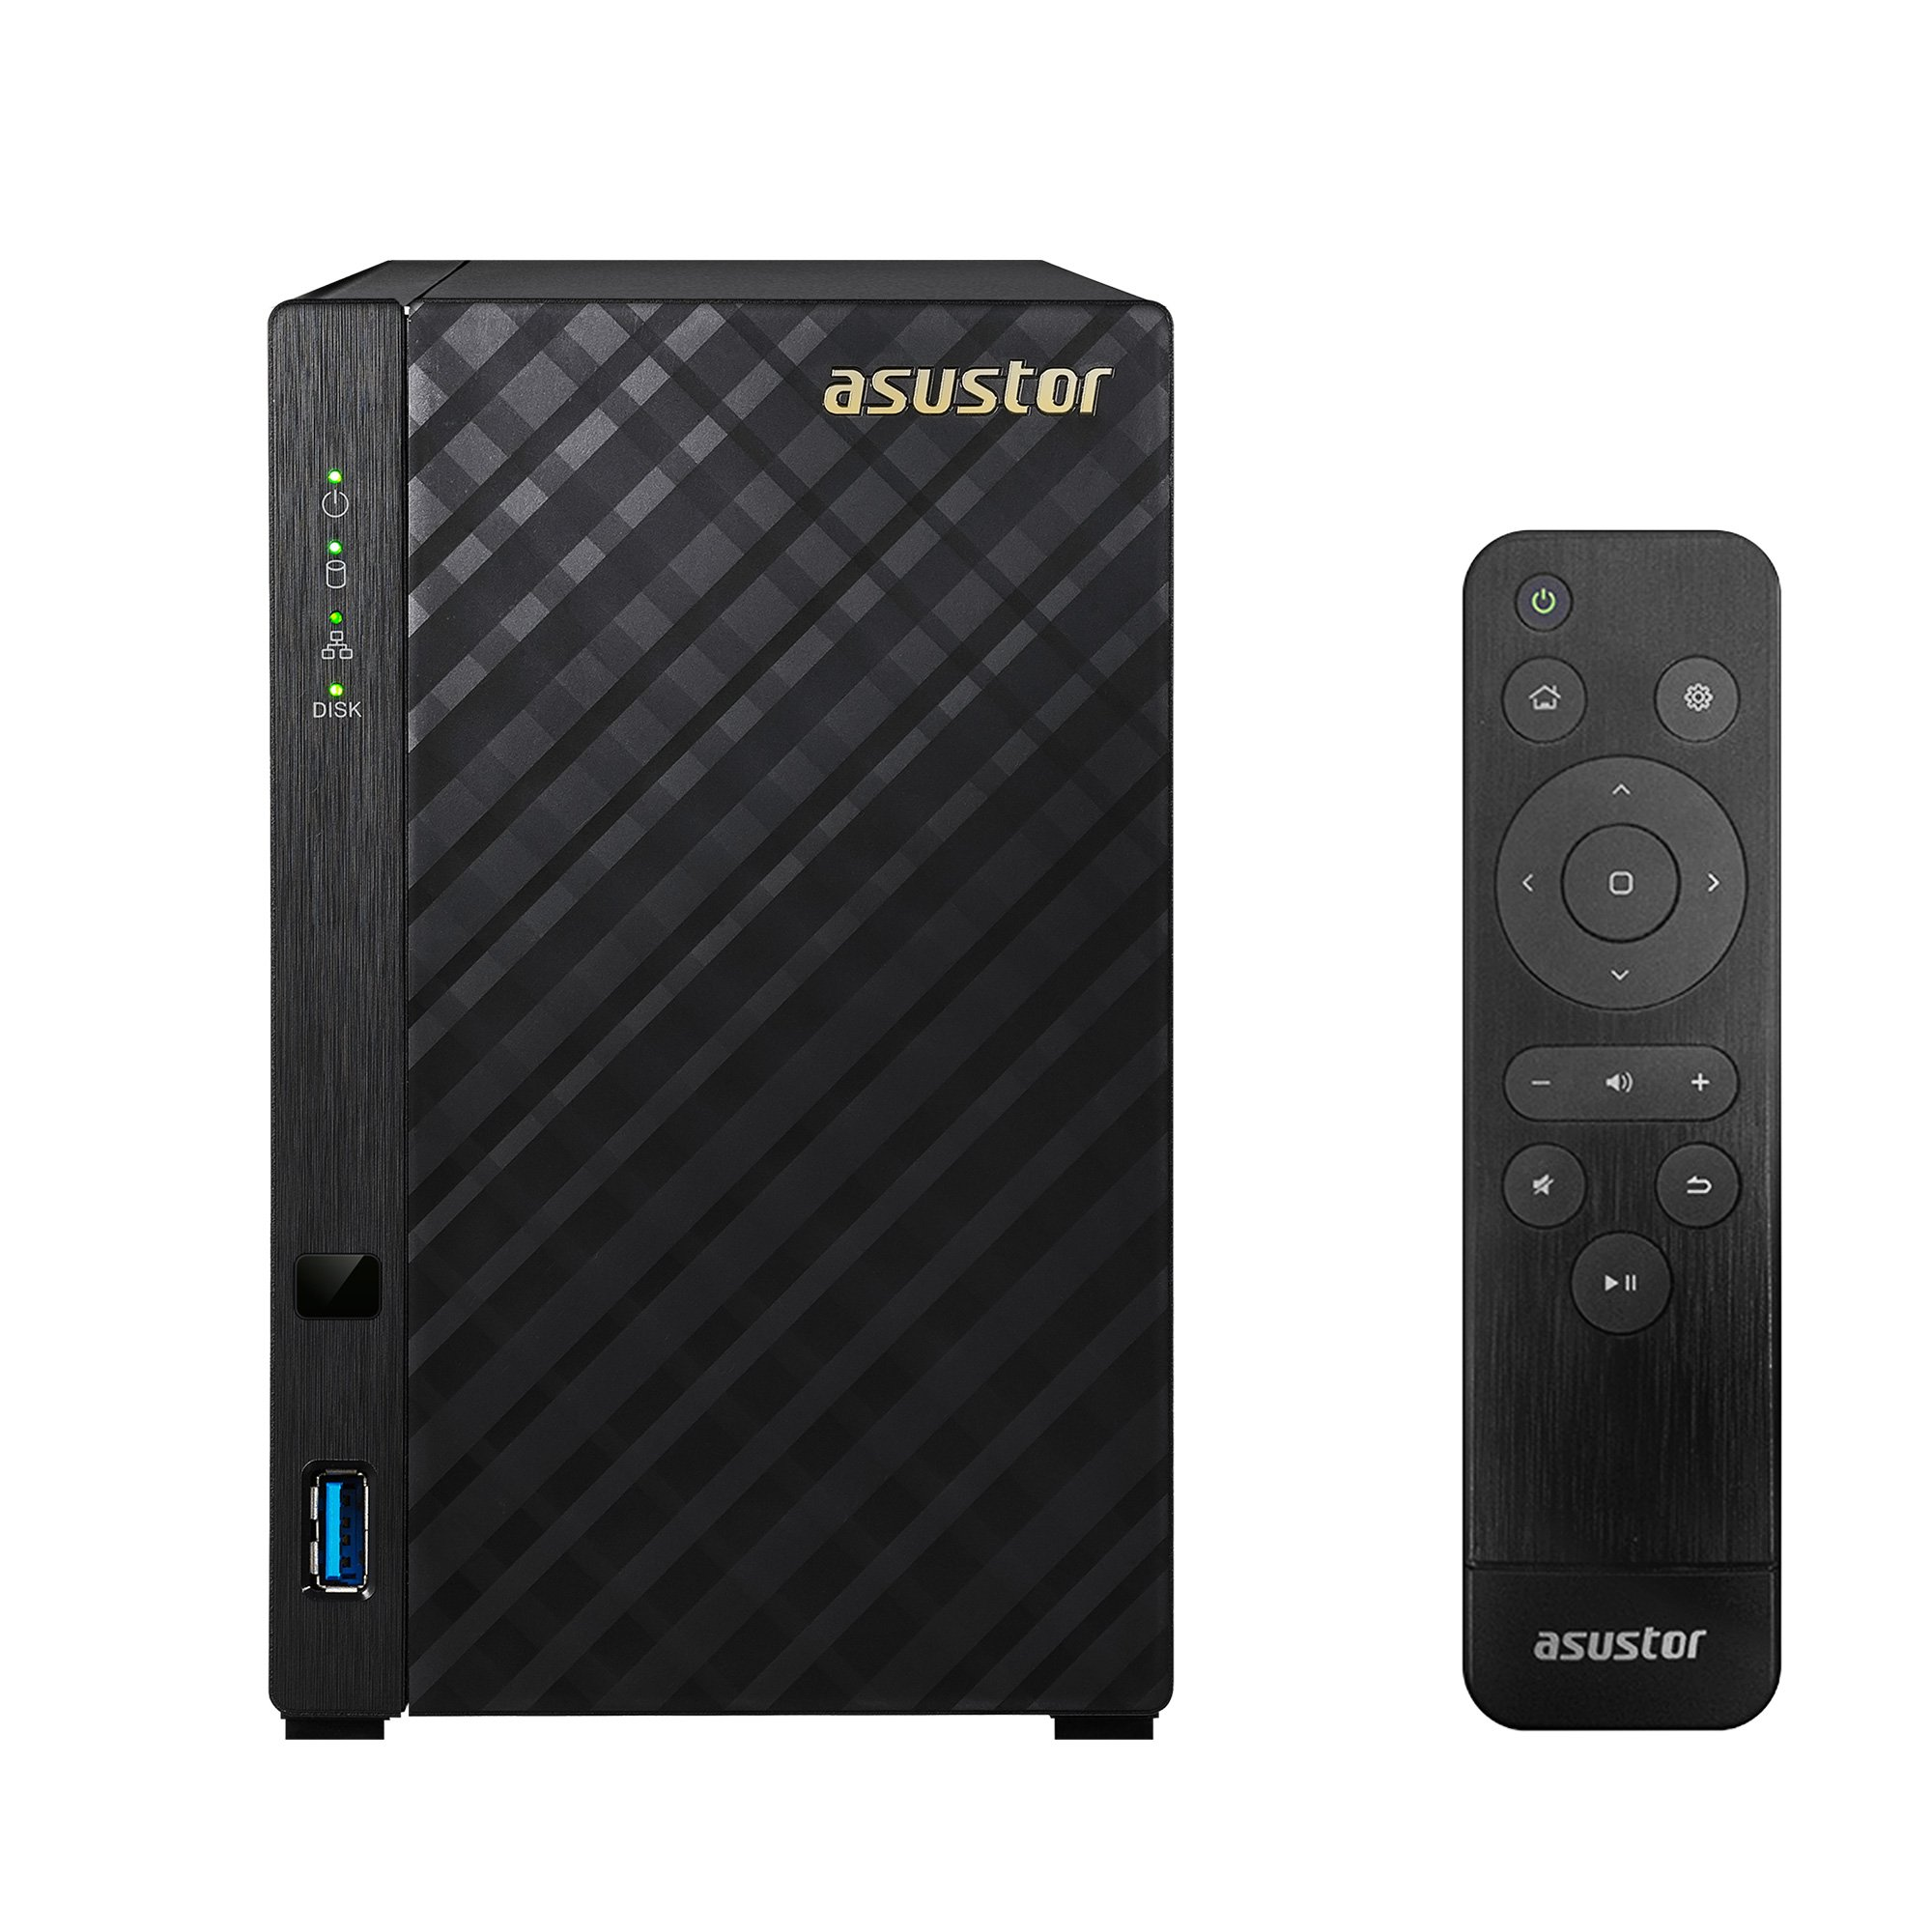 Asustor AS3202T, 2 Bay NAS (Diskless), Intel 1.6GHz Quad-Core, 2GB RAM, Includes Free AS-RC13 Multimedia Remote